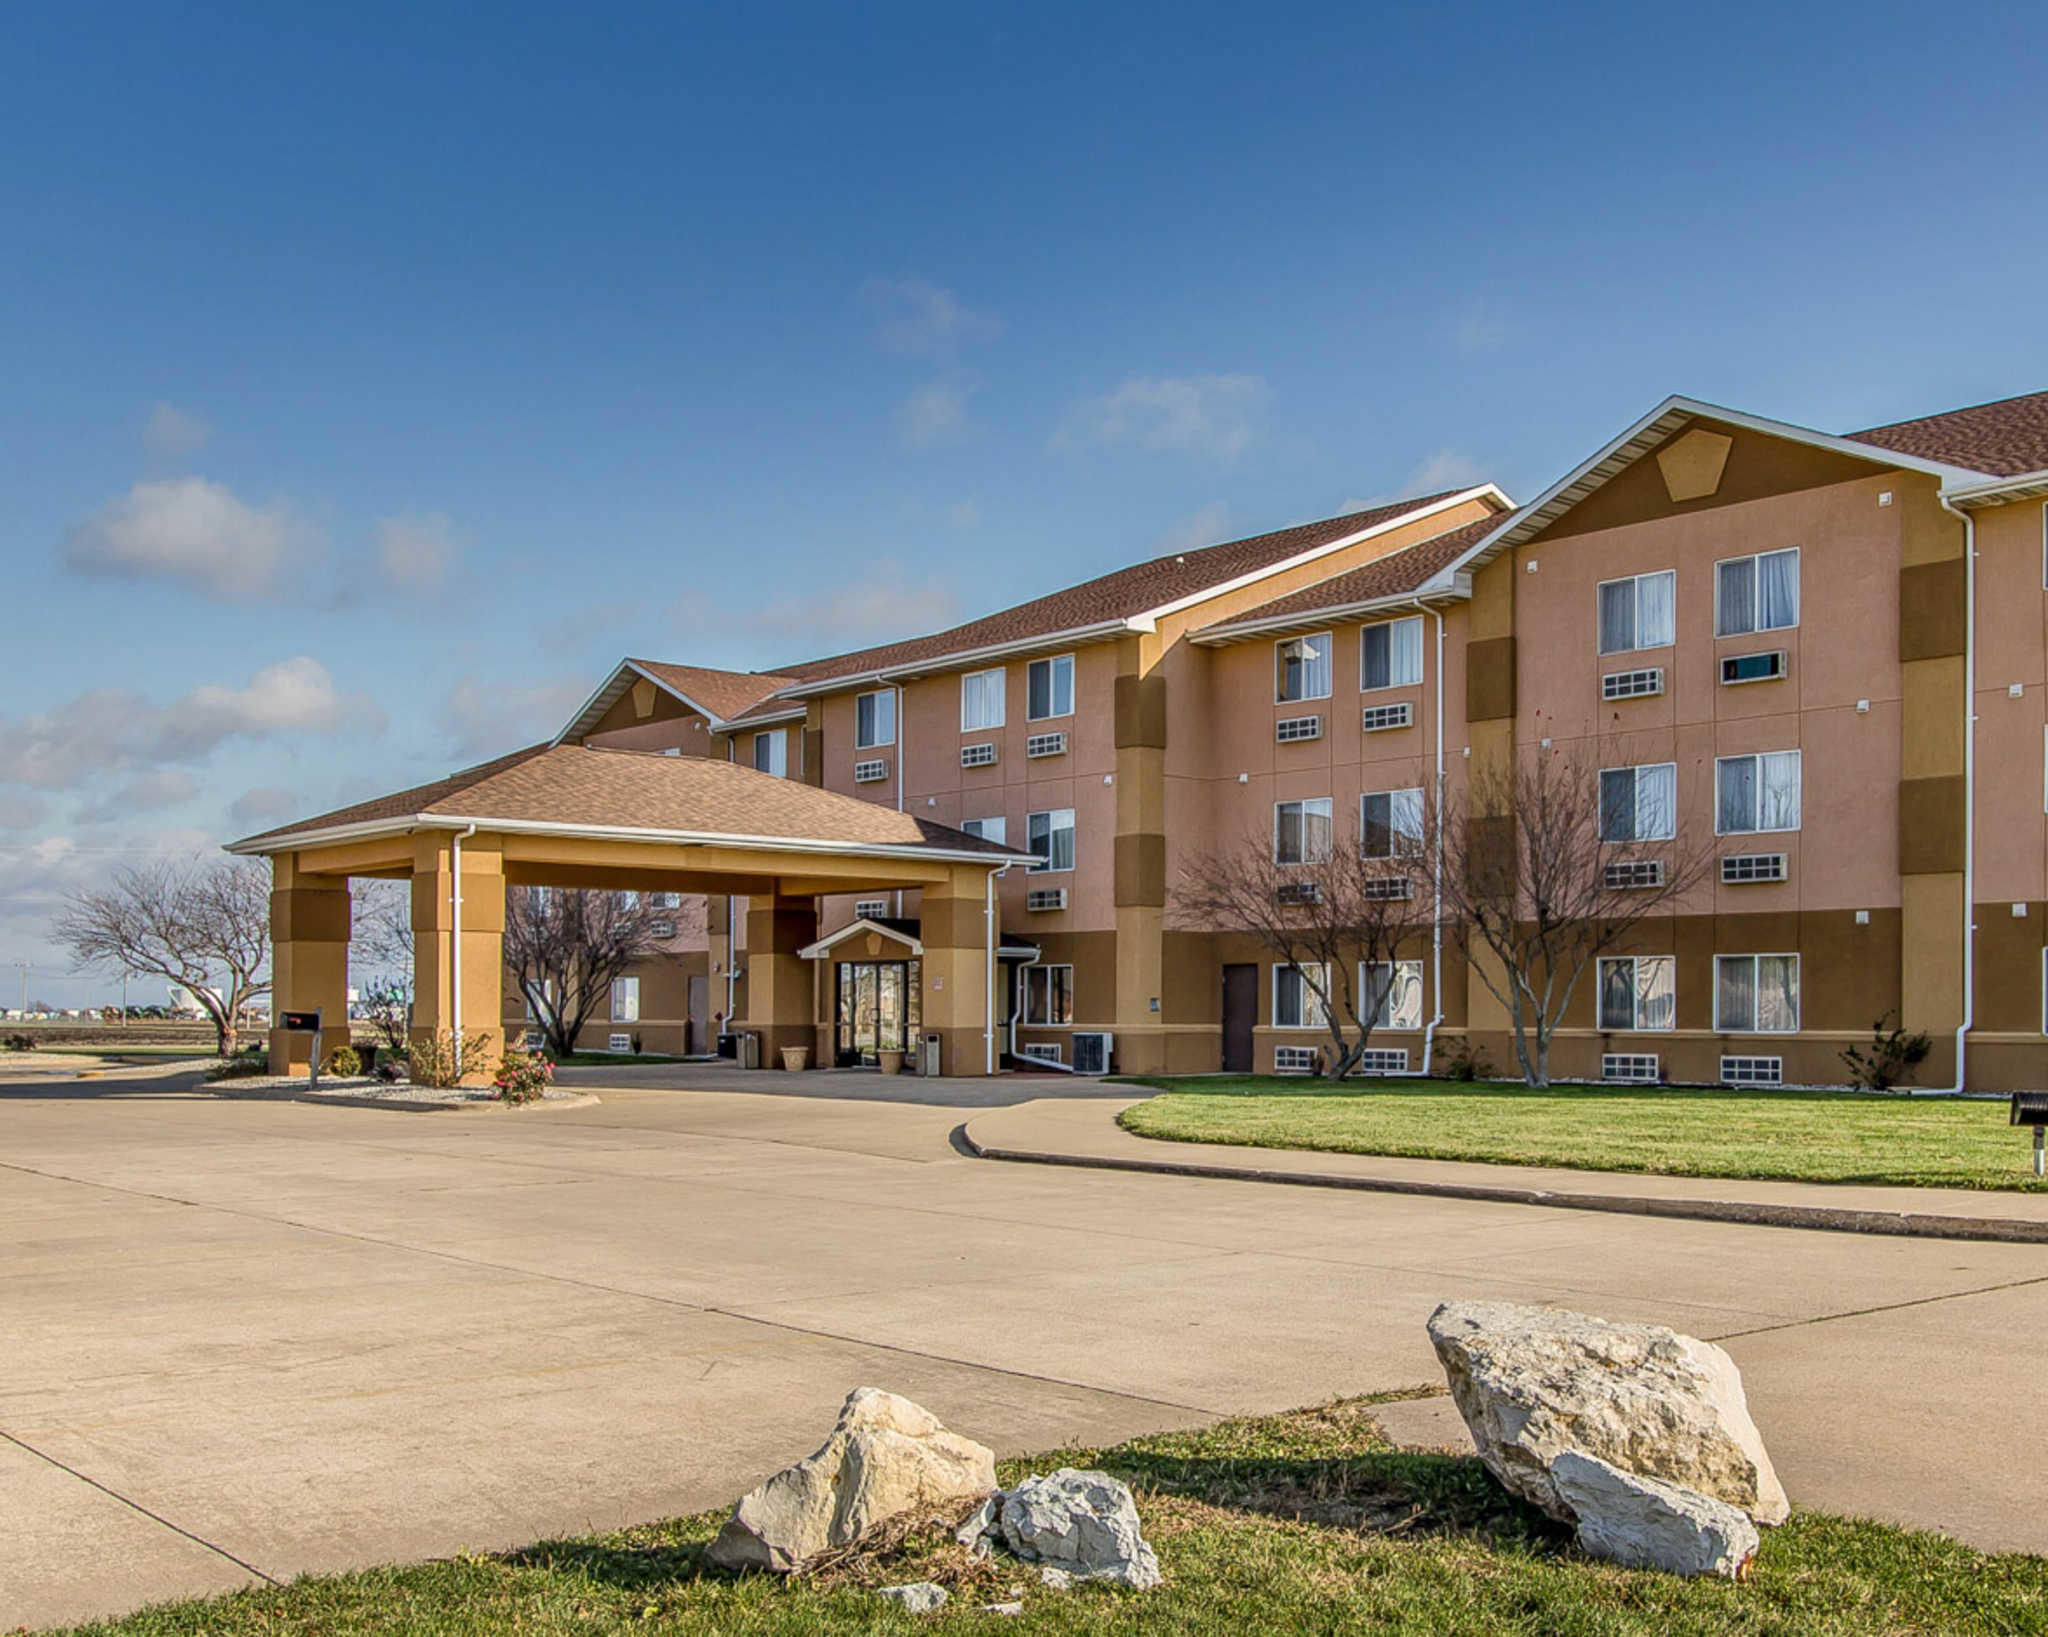 Quality Inn & Suites image 1